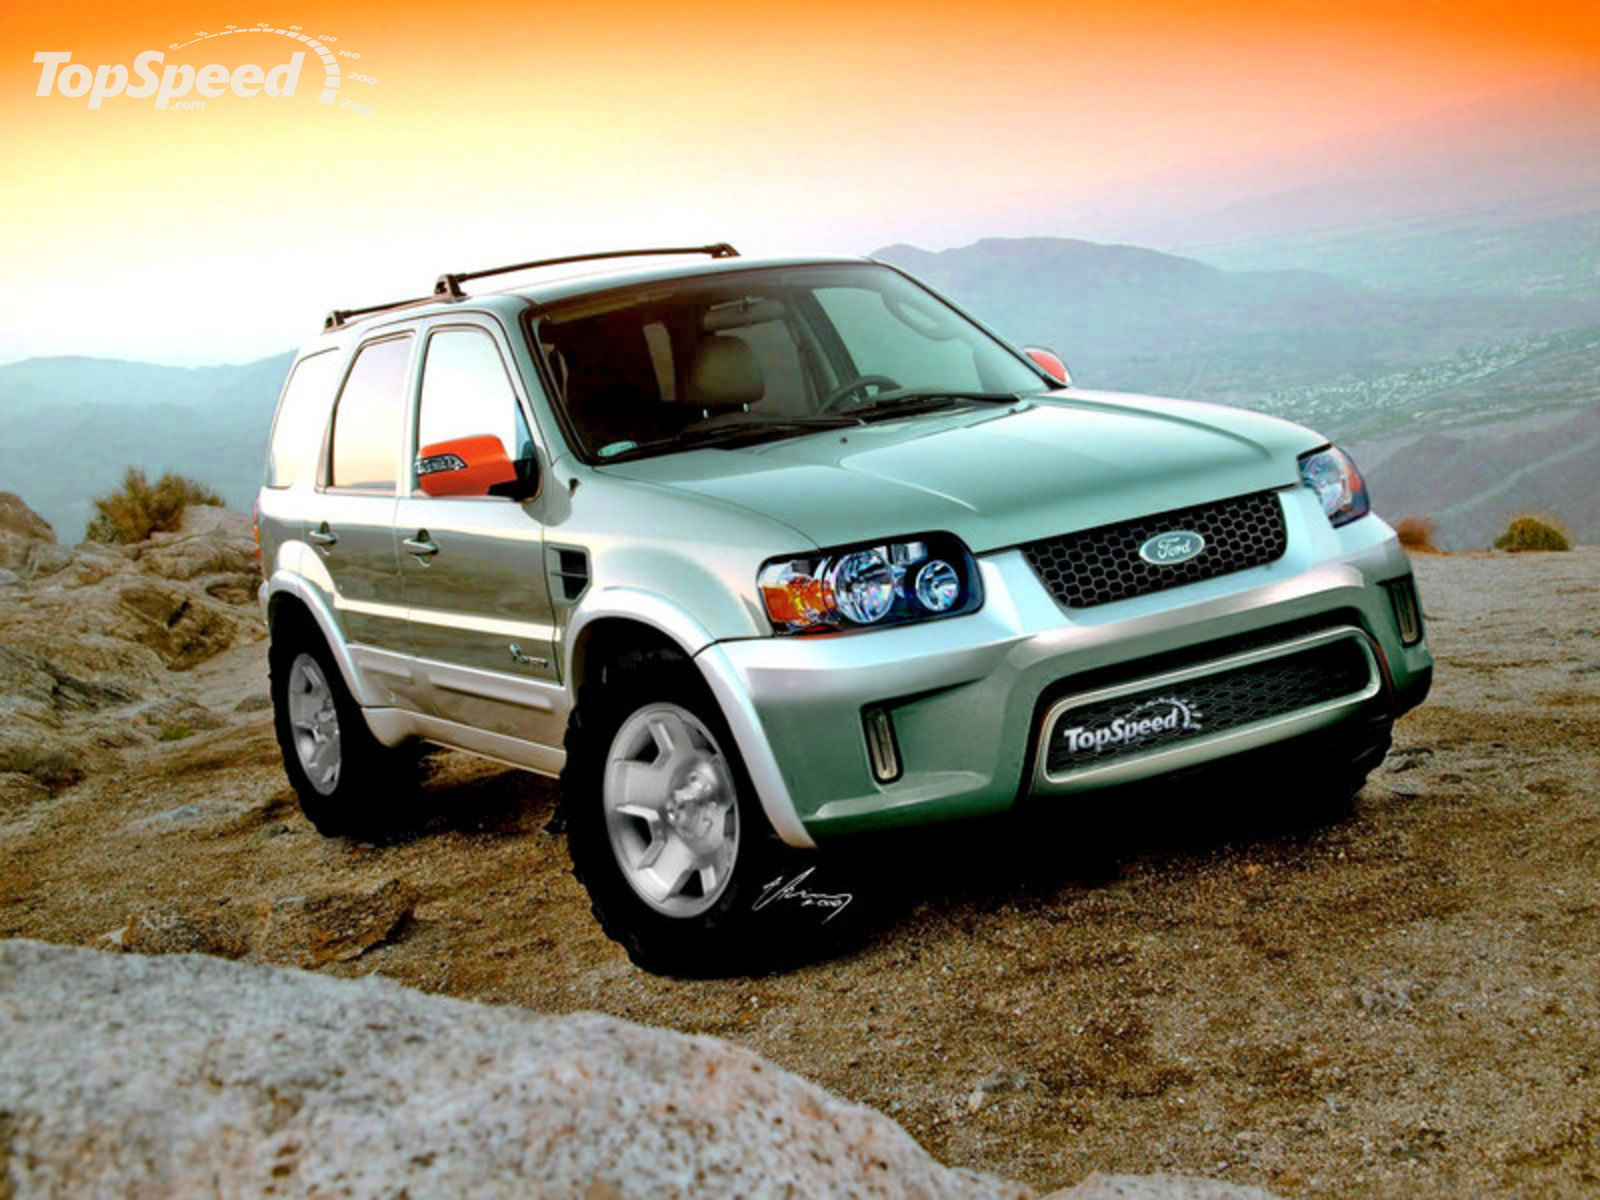 Ford Escape Hybrid picture High Resolution Image HD Free Download